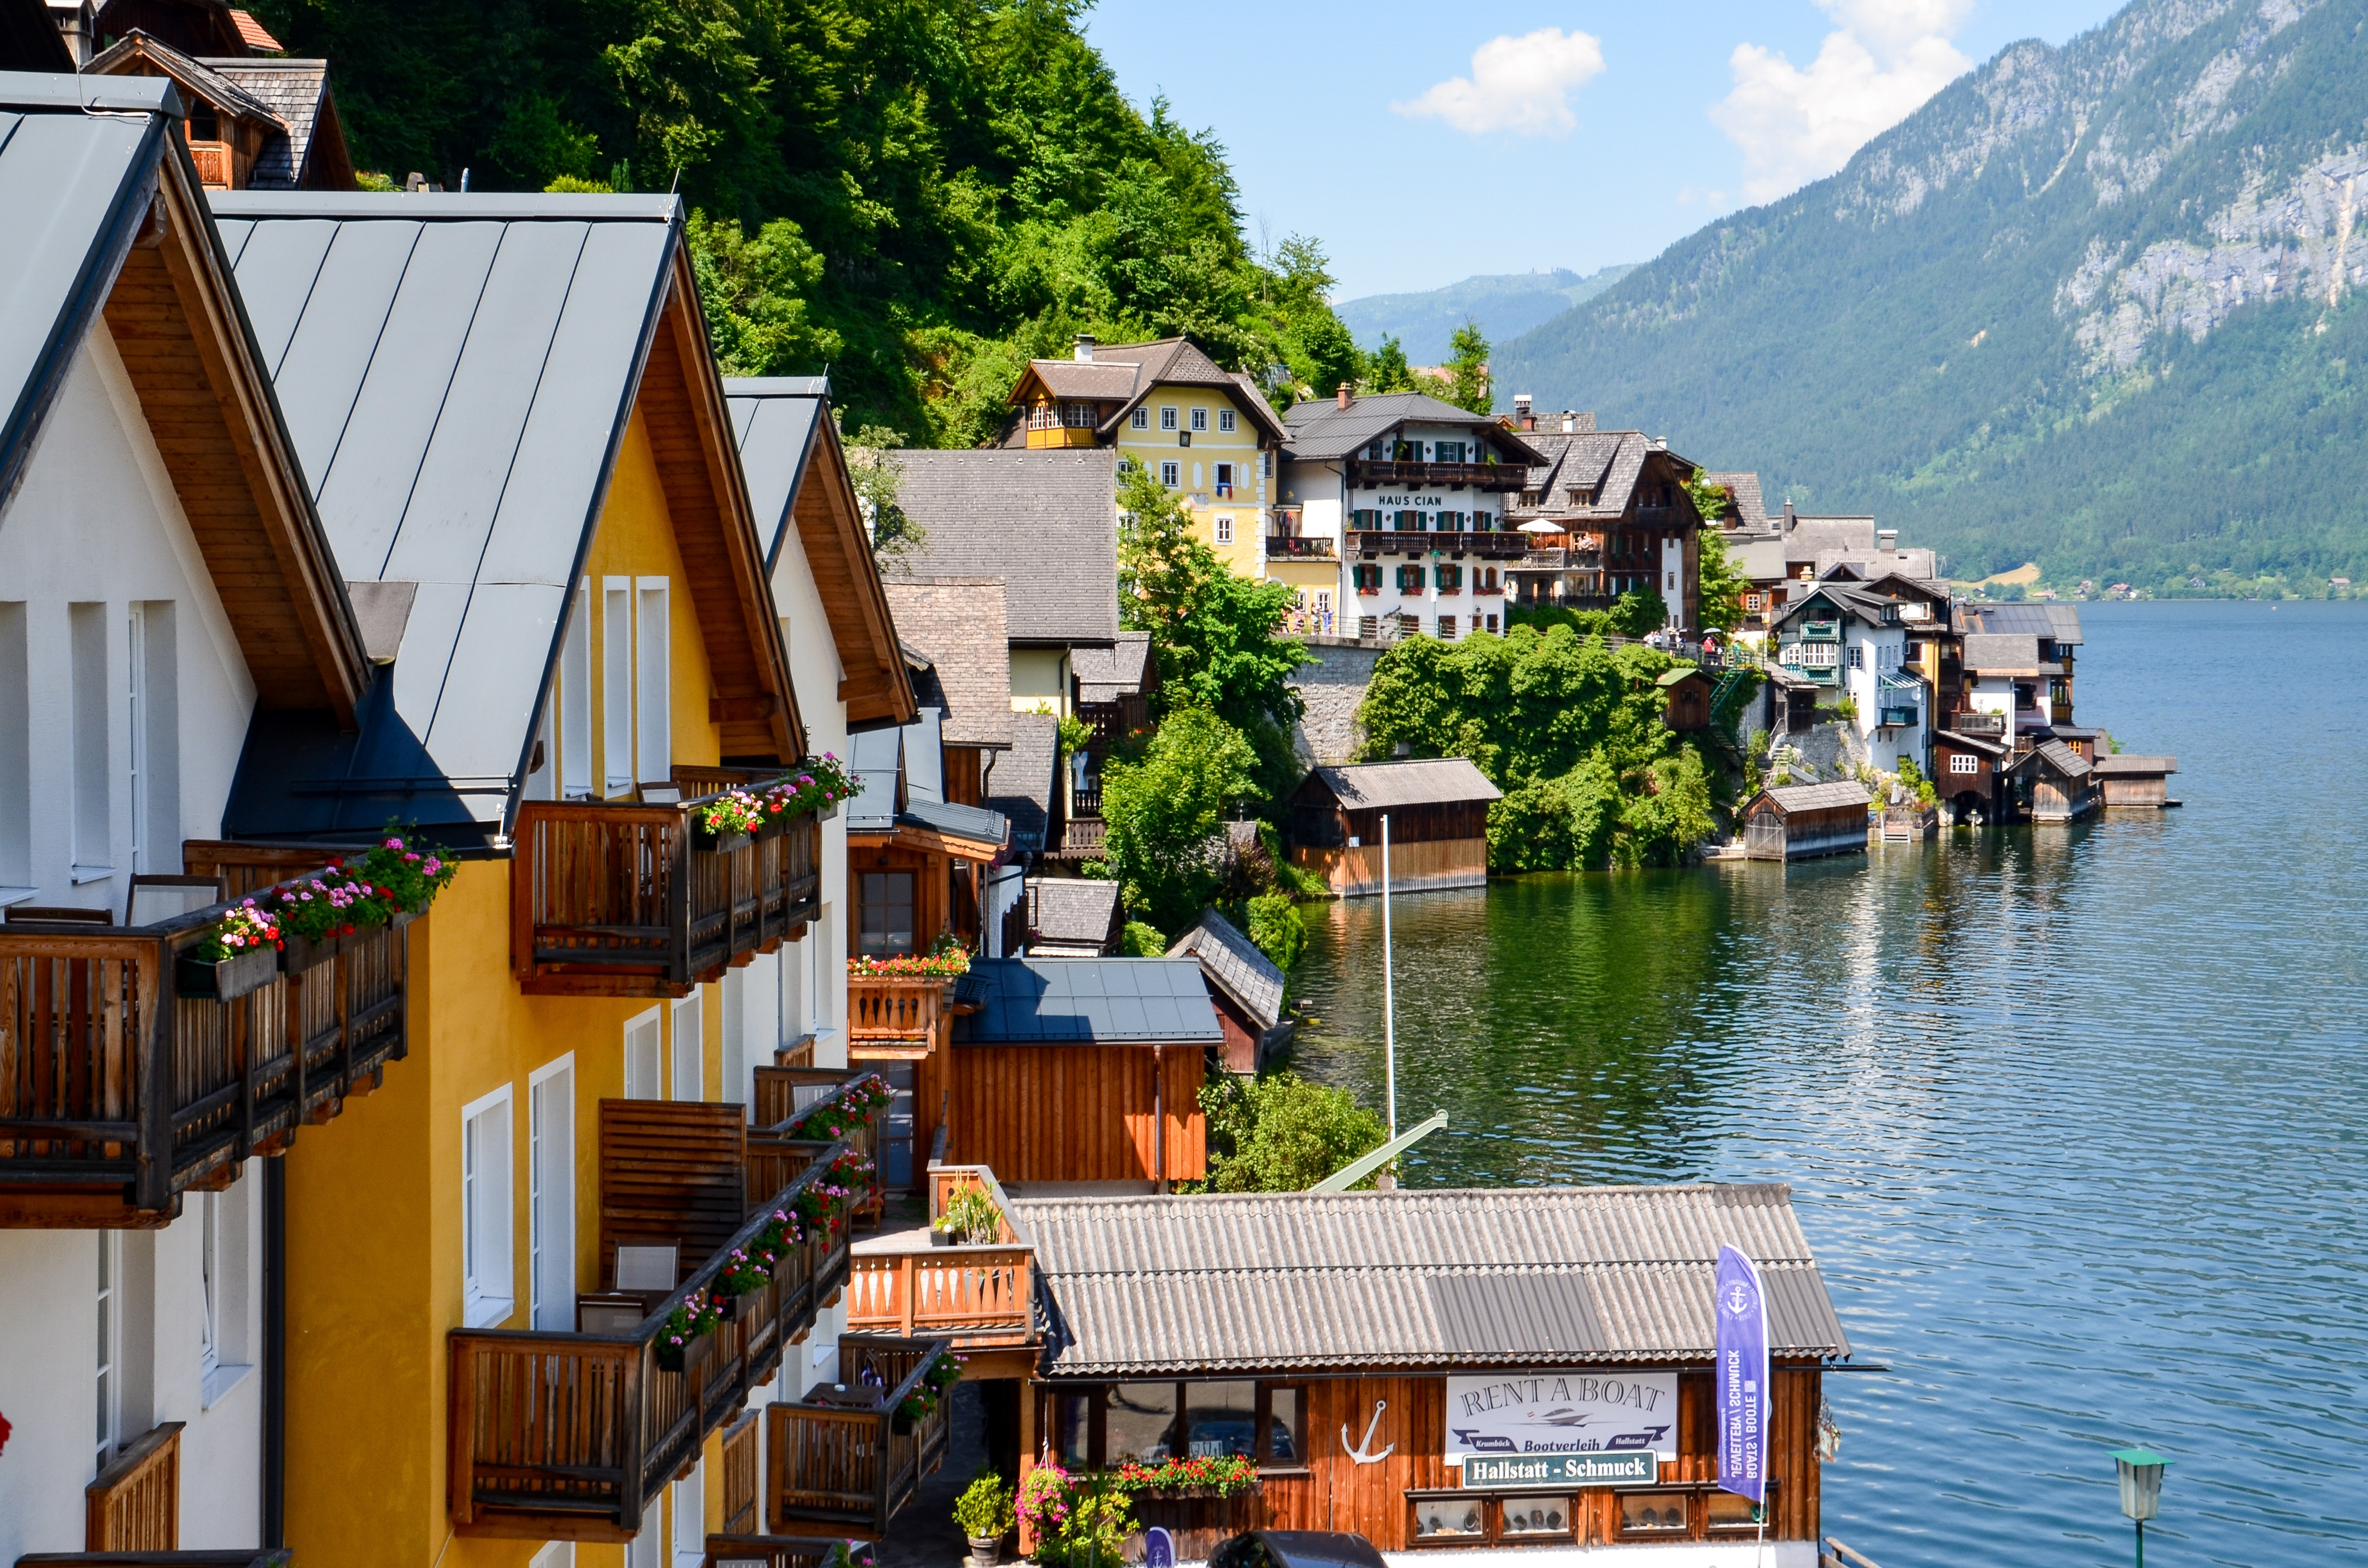 Photography of houses beside body of water